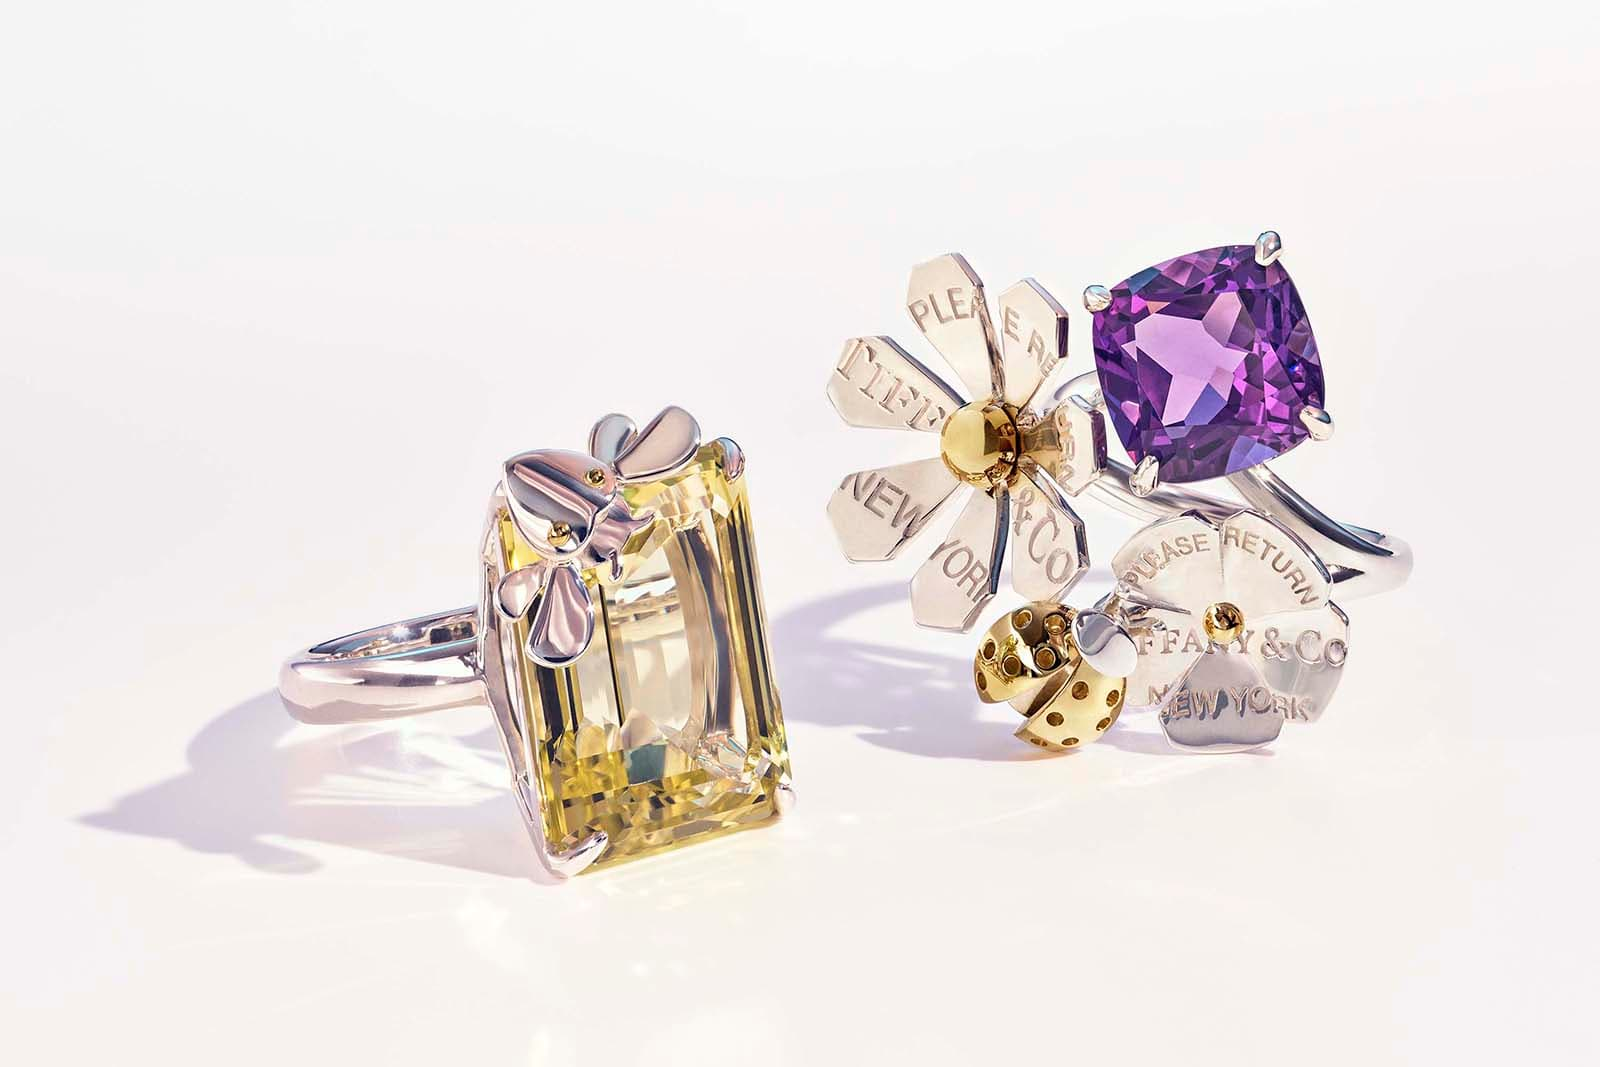 Tiffany&Co. 'Return to Tiffany Love Bugs' collection rings with 14ct quartz and 5ct amethyst in yellow and white gold and silver